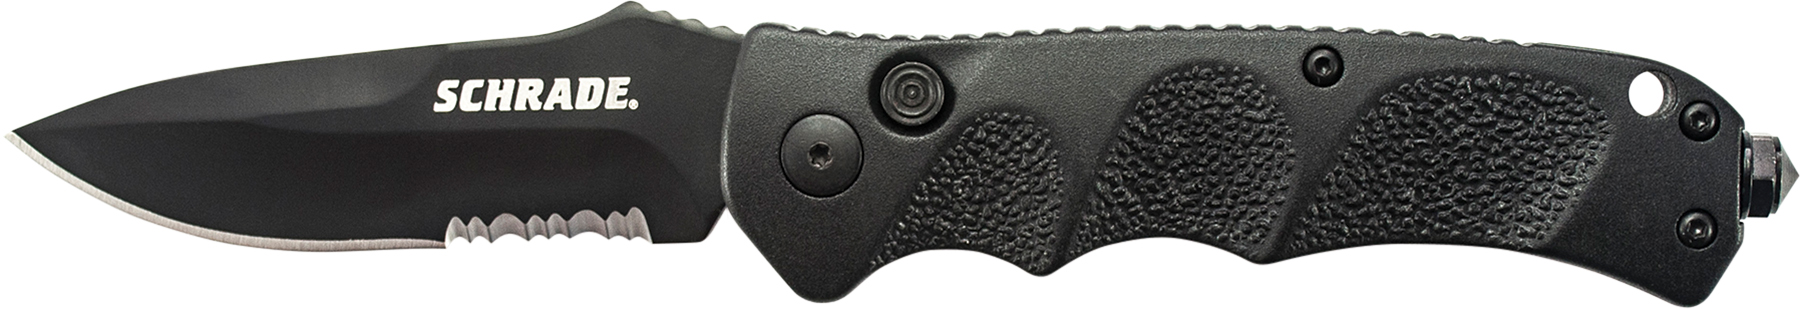 SC60BS - Schrade Black Drop Point 40% Serrated 4116 Steel, Push Button Lock, Safety On Back Of Handle